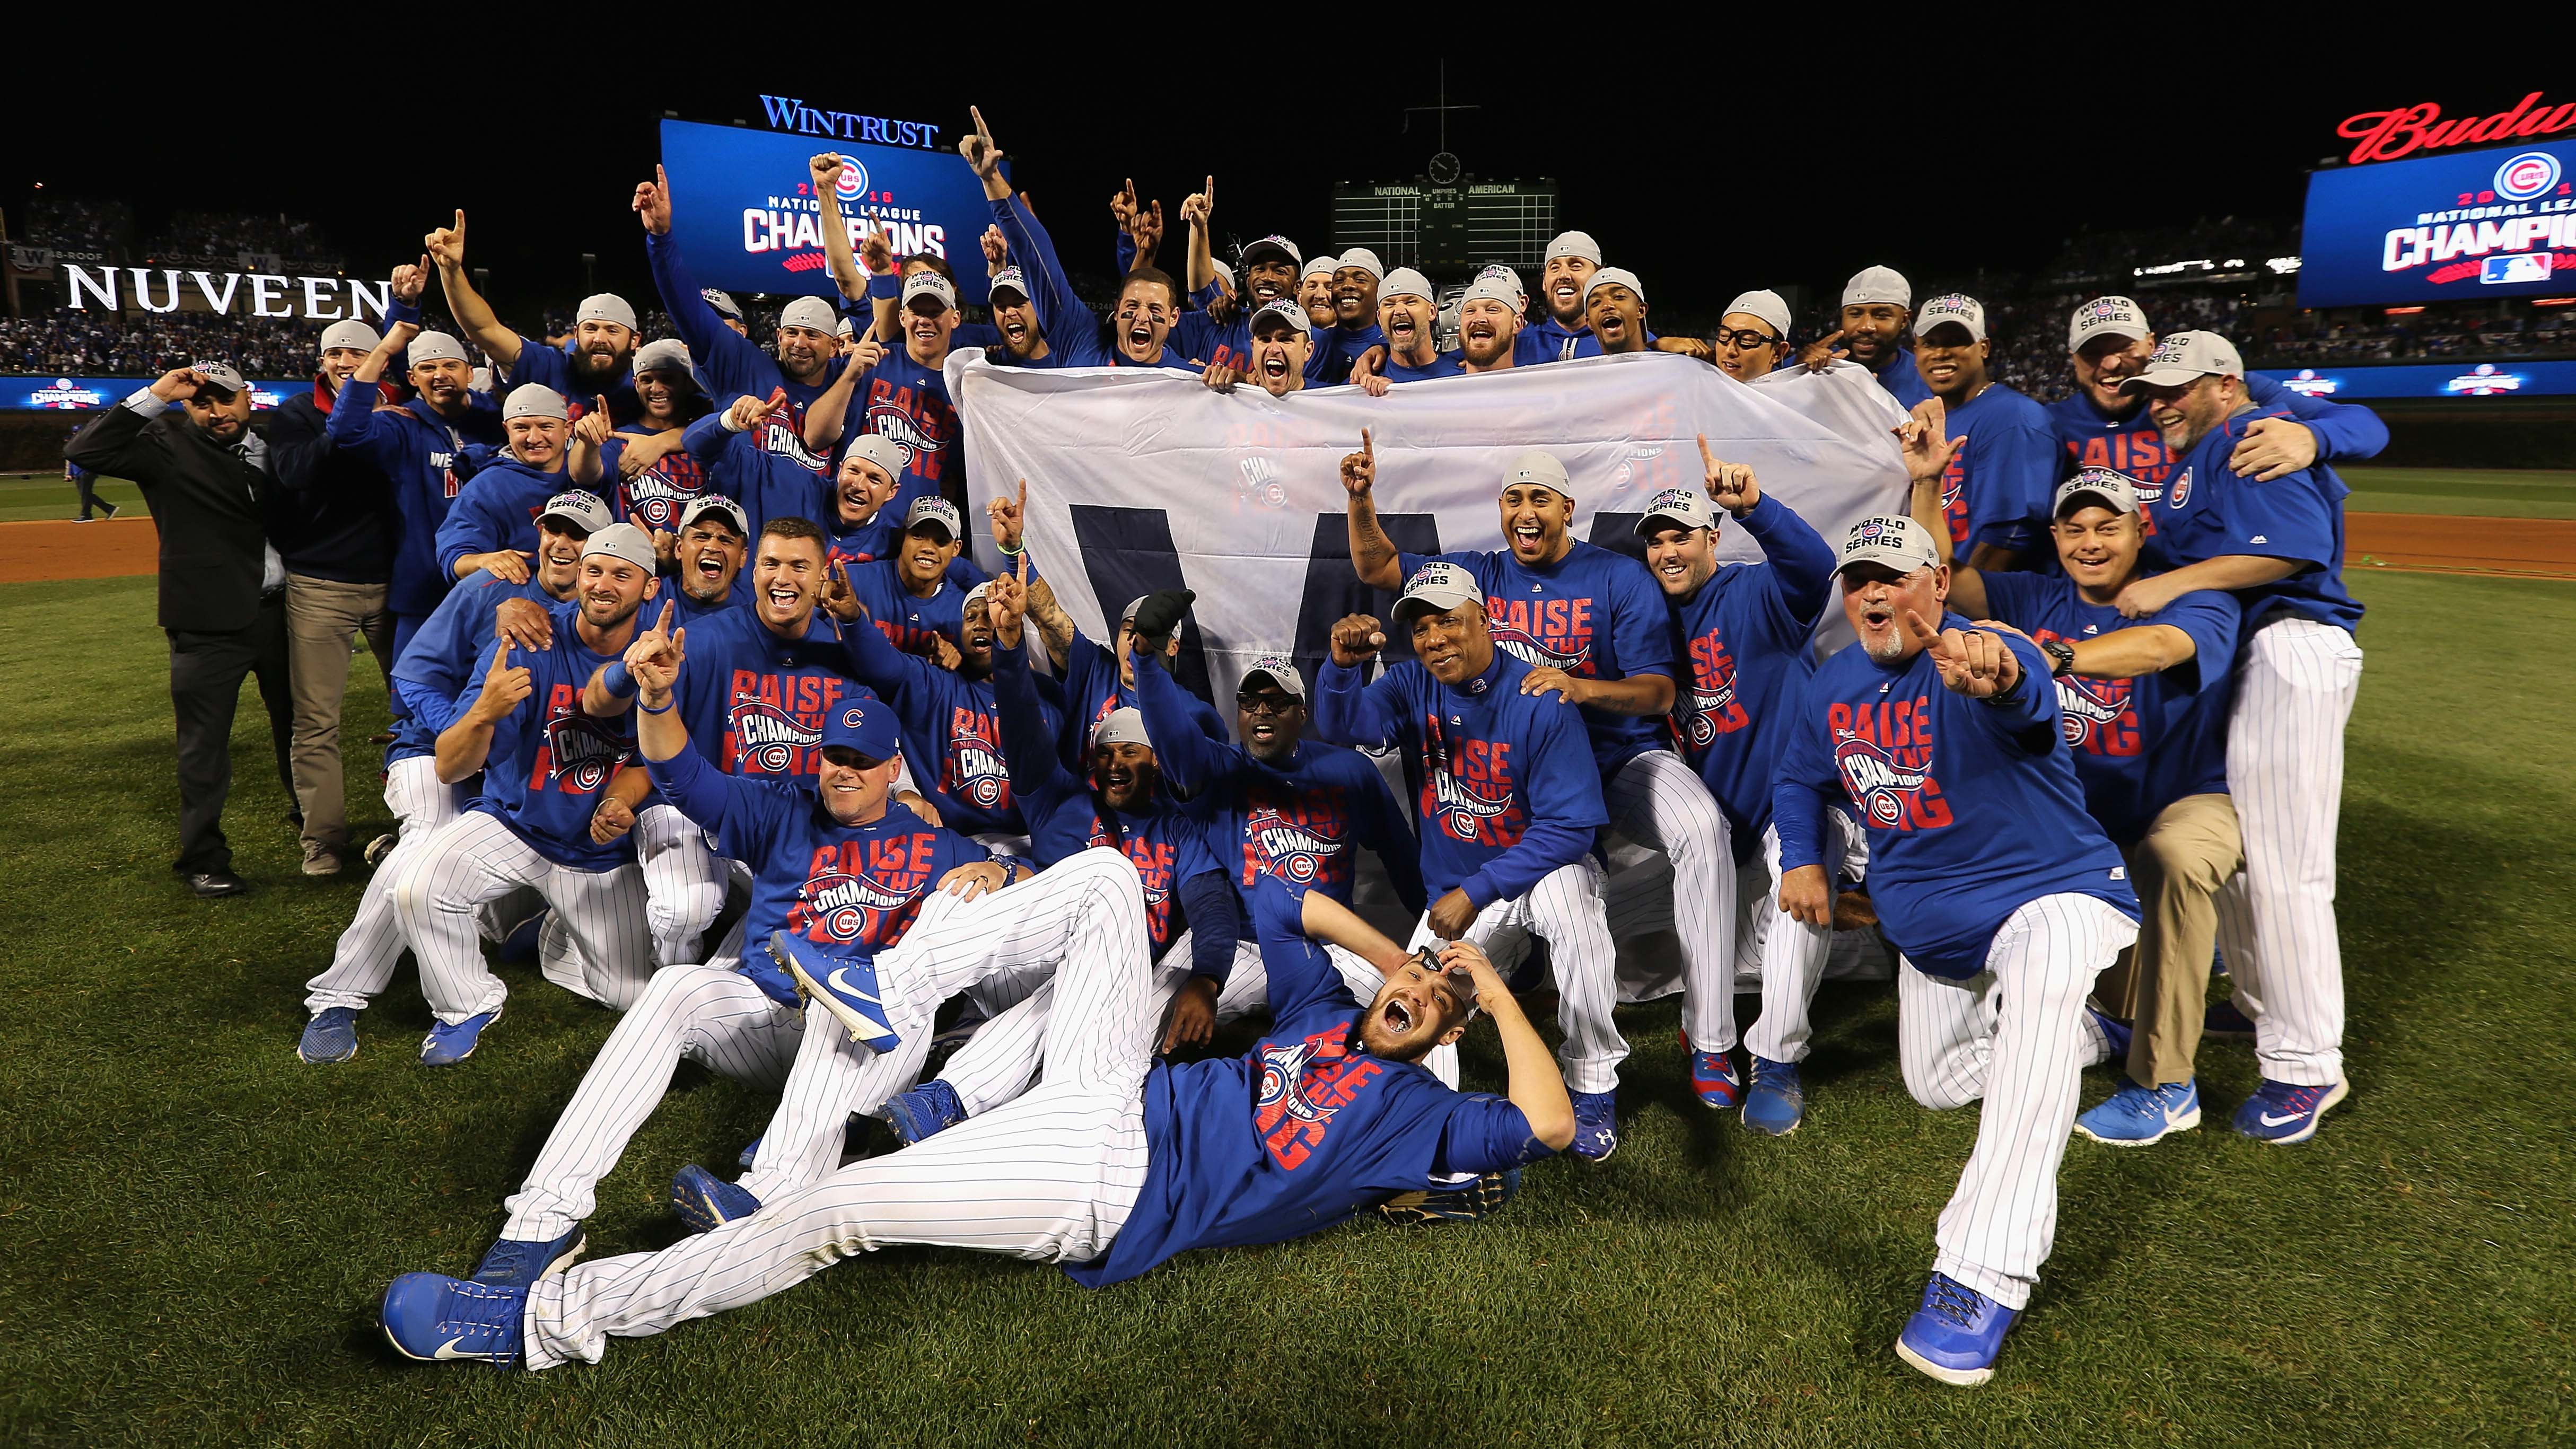 CHICAGO, IL - OCTOBER 22: The Chicago Cubs pose after defeating the Los Angeles Dodgers 5-0 in game six of the National League Championship Series to advance to the World Series against the Cleveland Indians at Wrigley Field on October 22, 2016 in Chicago, Illinois. (Photo by Jonathan Daniel/Getty Images)